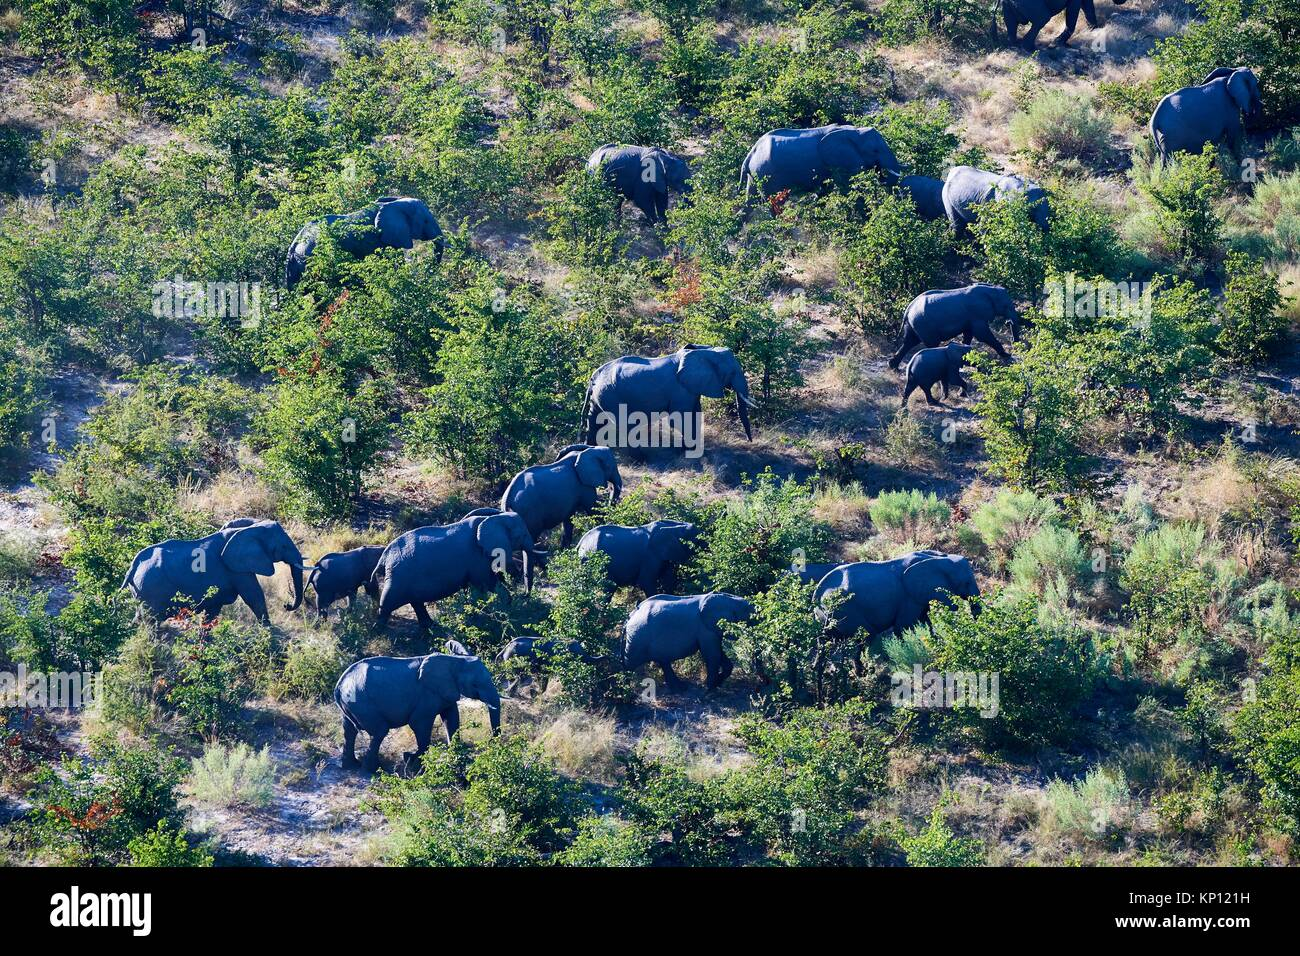 Aerial view of herd of African elephants (Loxodonta africana) walking on dry land, Okavango delta, Botswana, Africa. - Stock Image